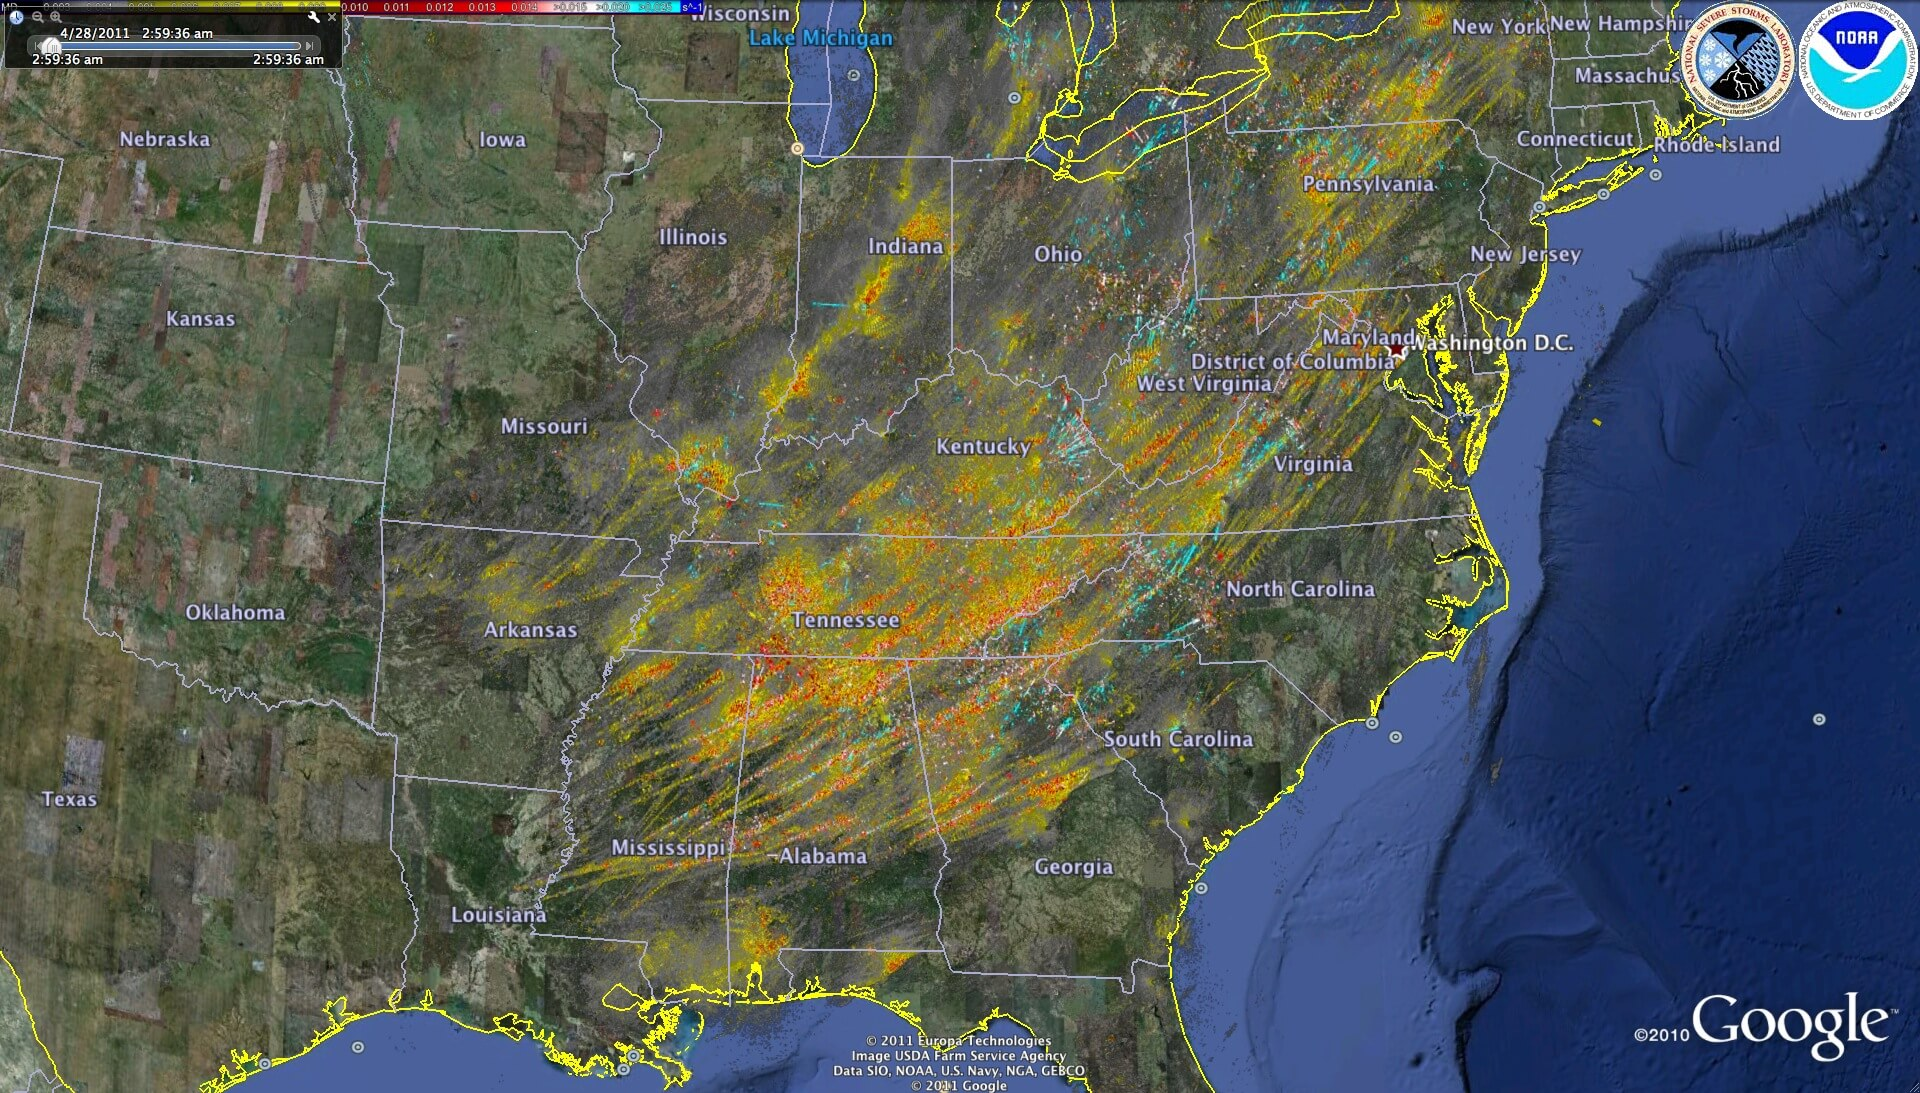 The Five Year Anniversary Of The April 27th 2011 Tornado